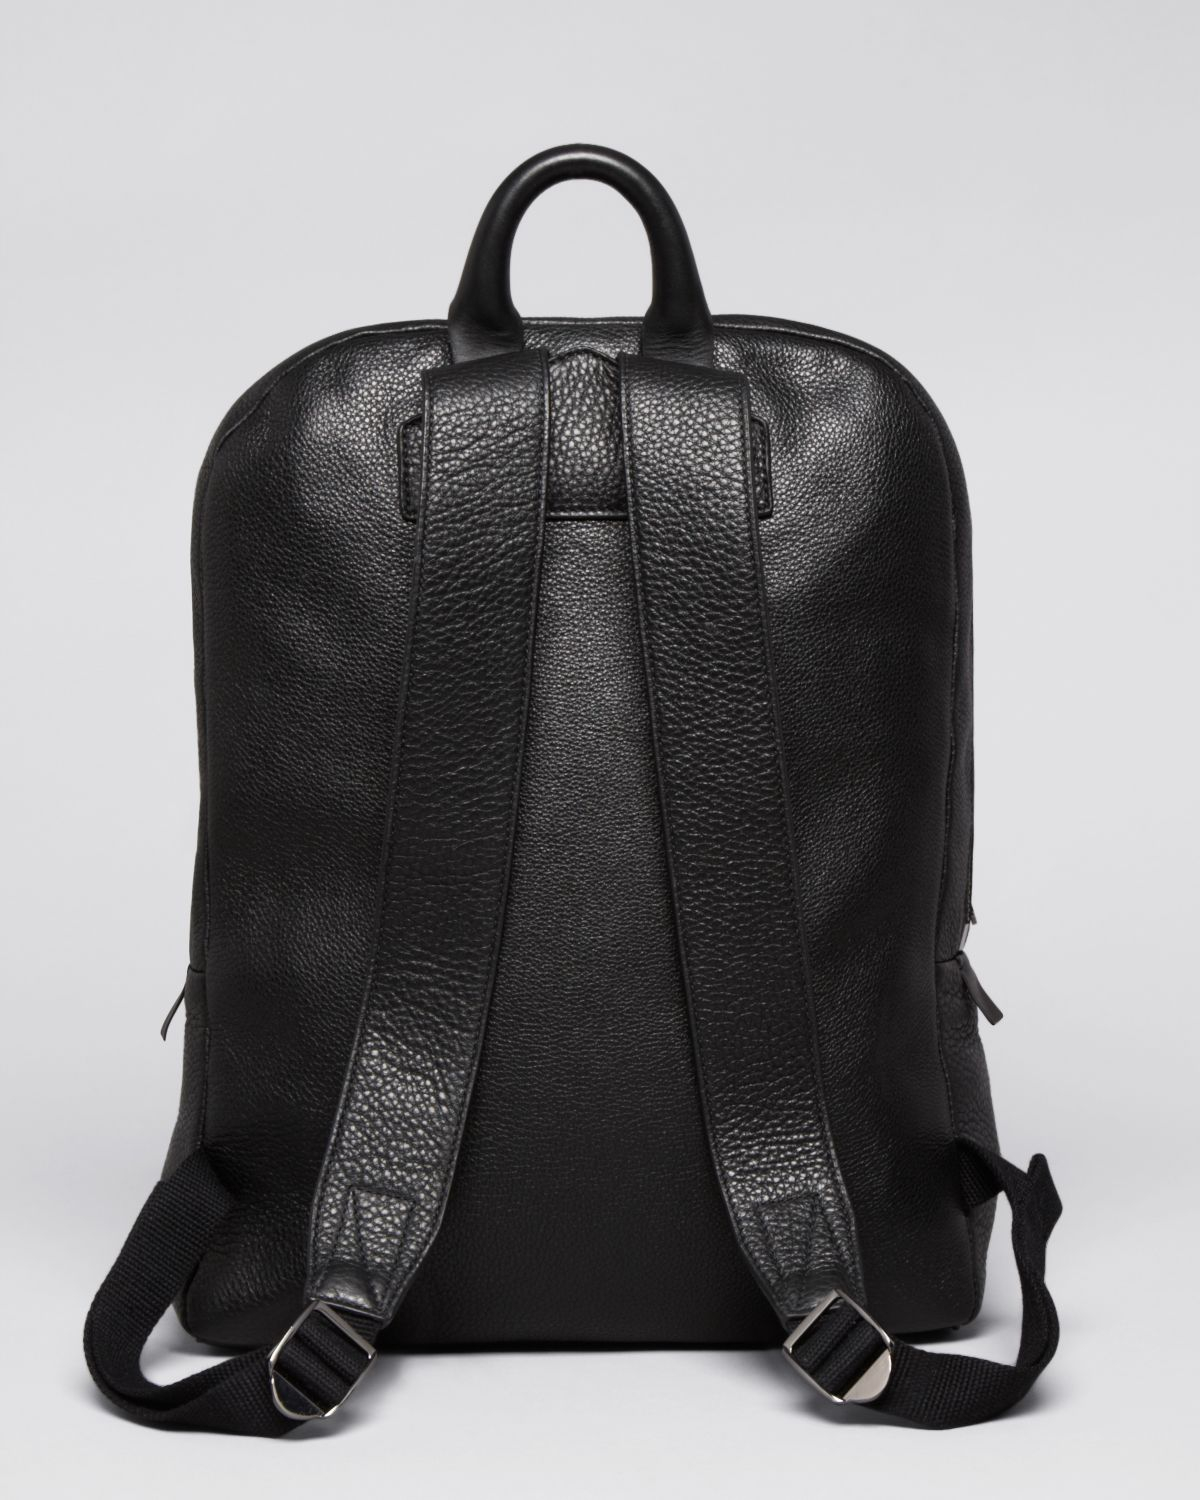 Marc by marc jacobs Classic Leather Backpack in Black for Men | Lyst